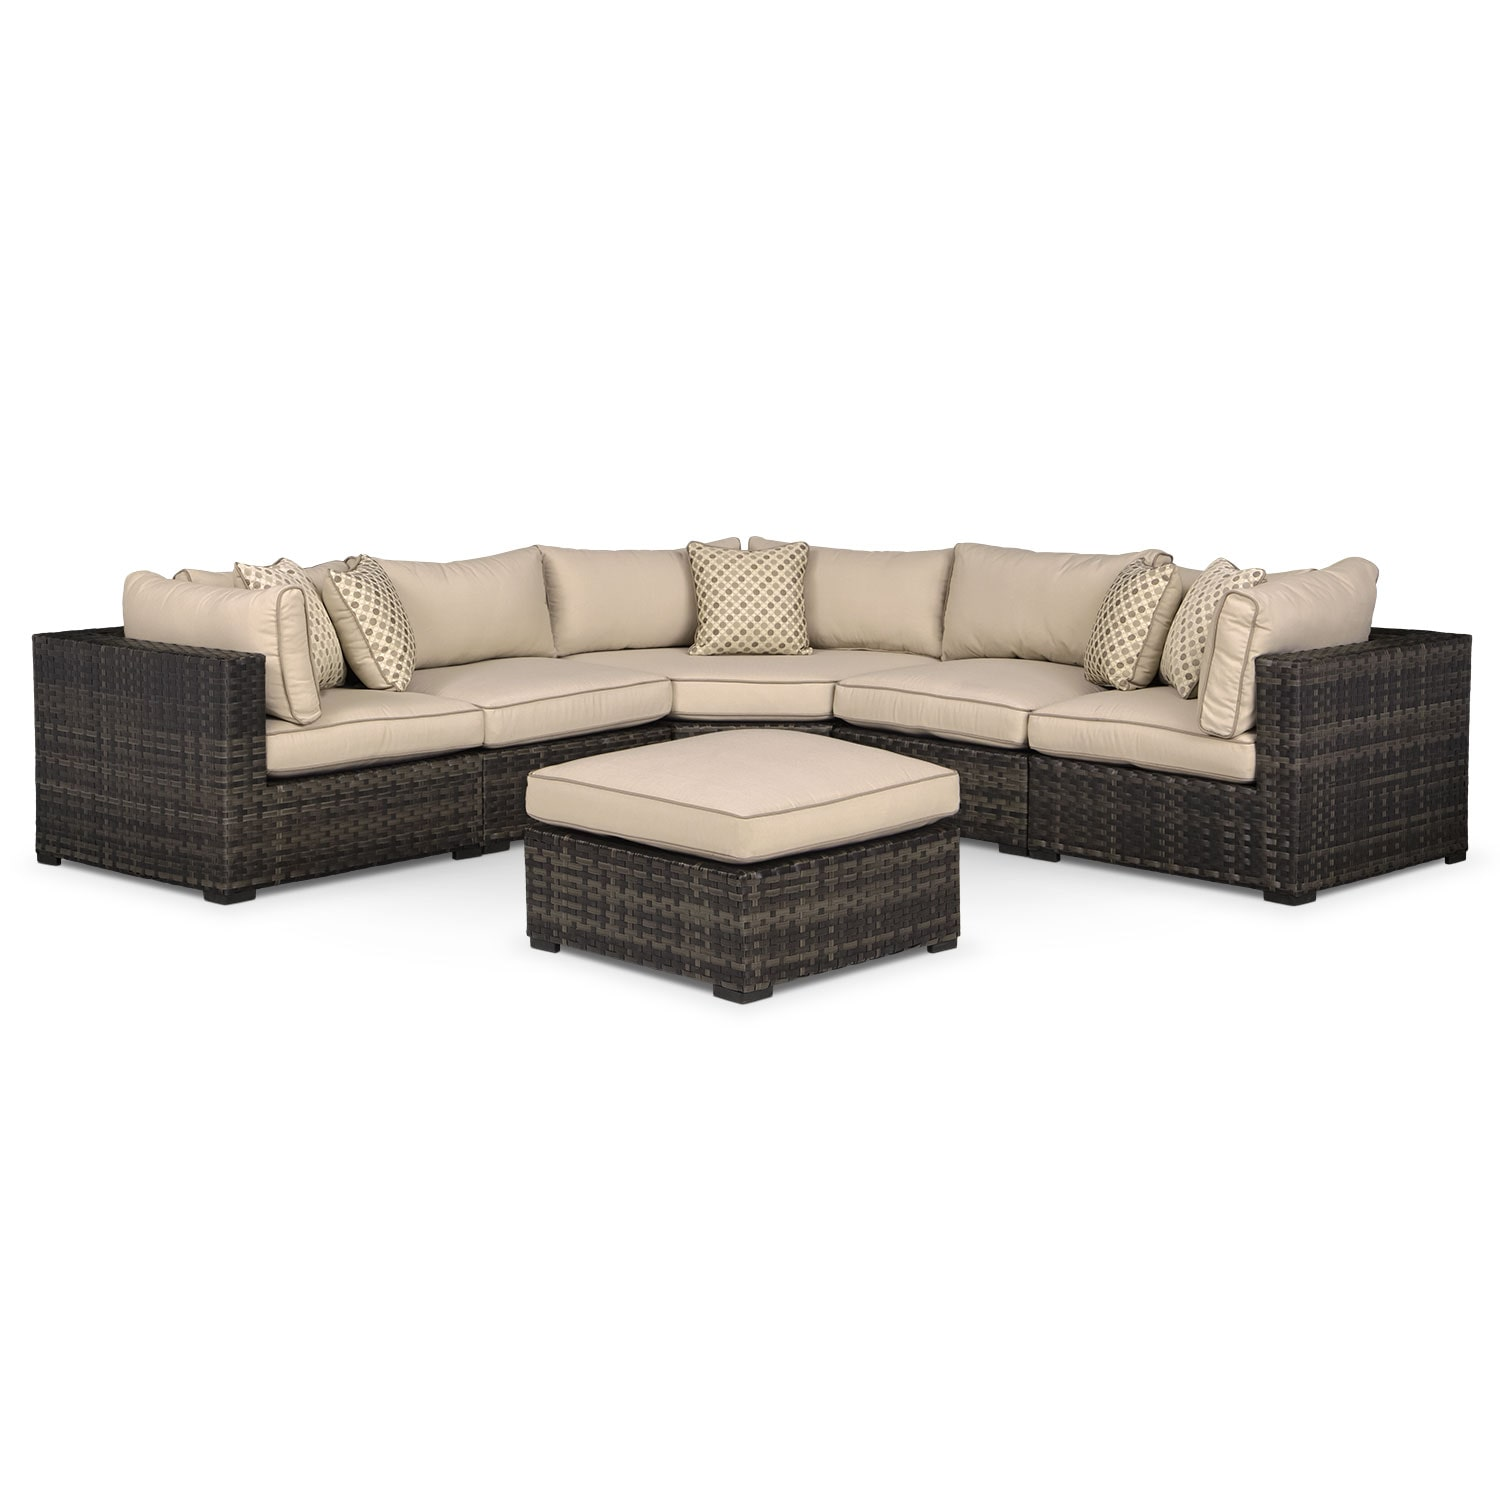 Outdoor Furniture - Regatta 5 Pc. Outdoor Sectional w/ Wedge and Ottoman